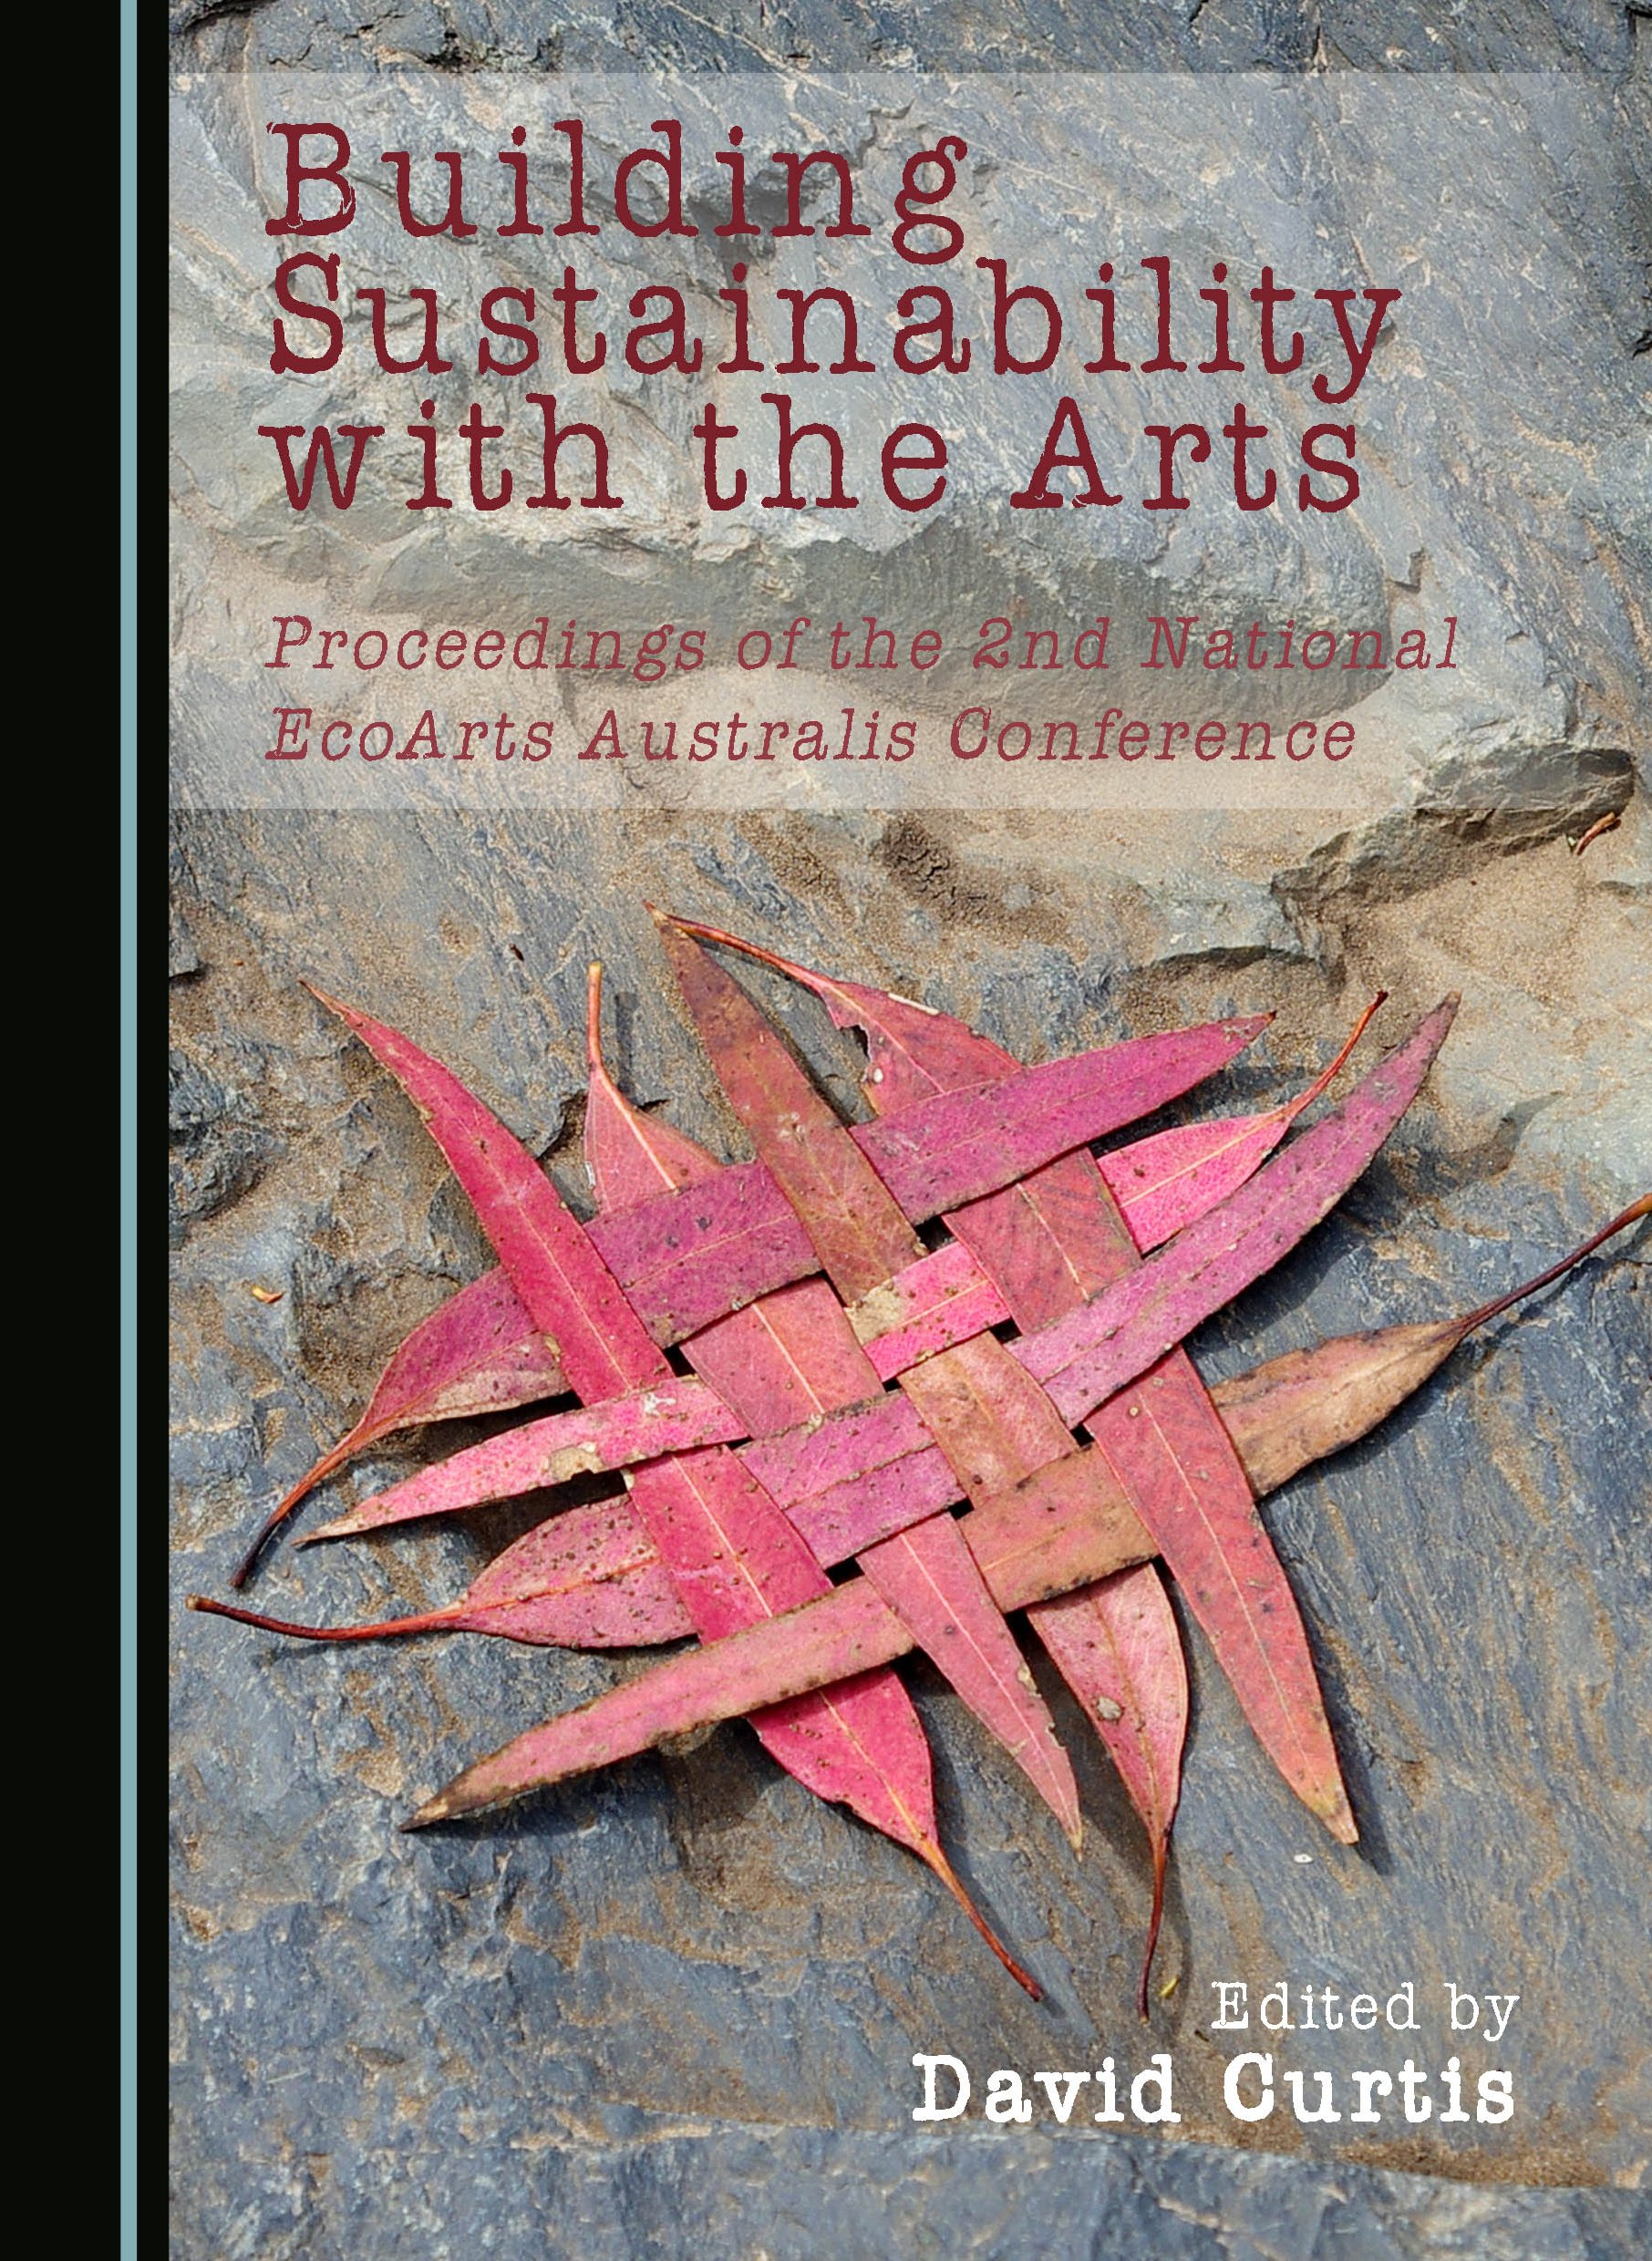 Building Sustainability with the Arts: Proceedings of the 2nd National EcoArts Australis Conference